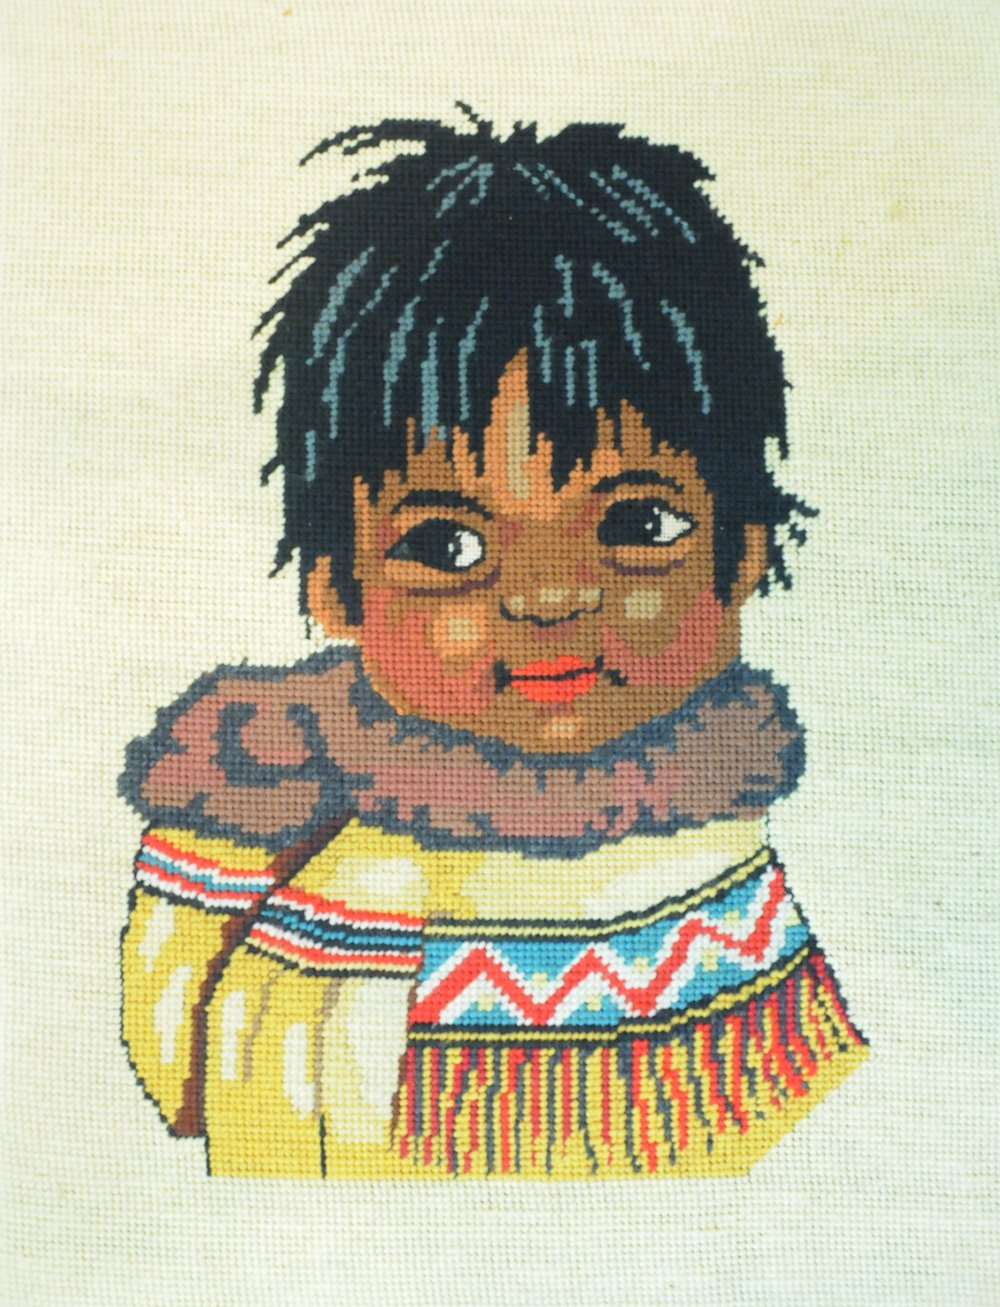 Untitled (Portrait of Child), c. 1970s, artist unknown, needlepoint